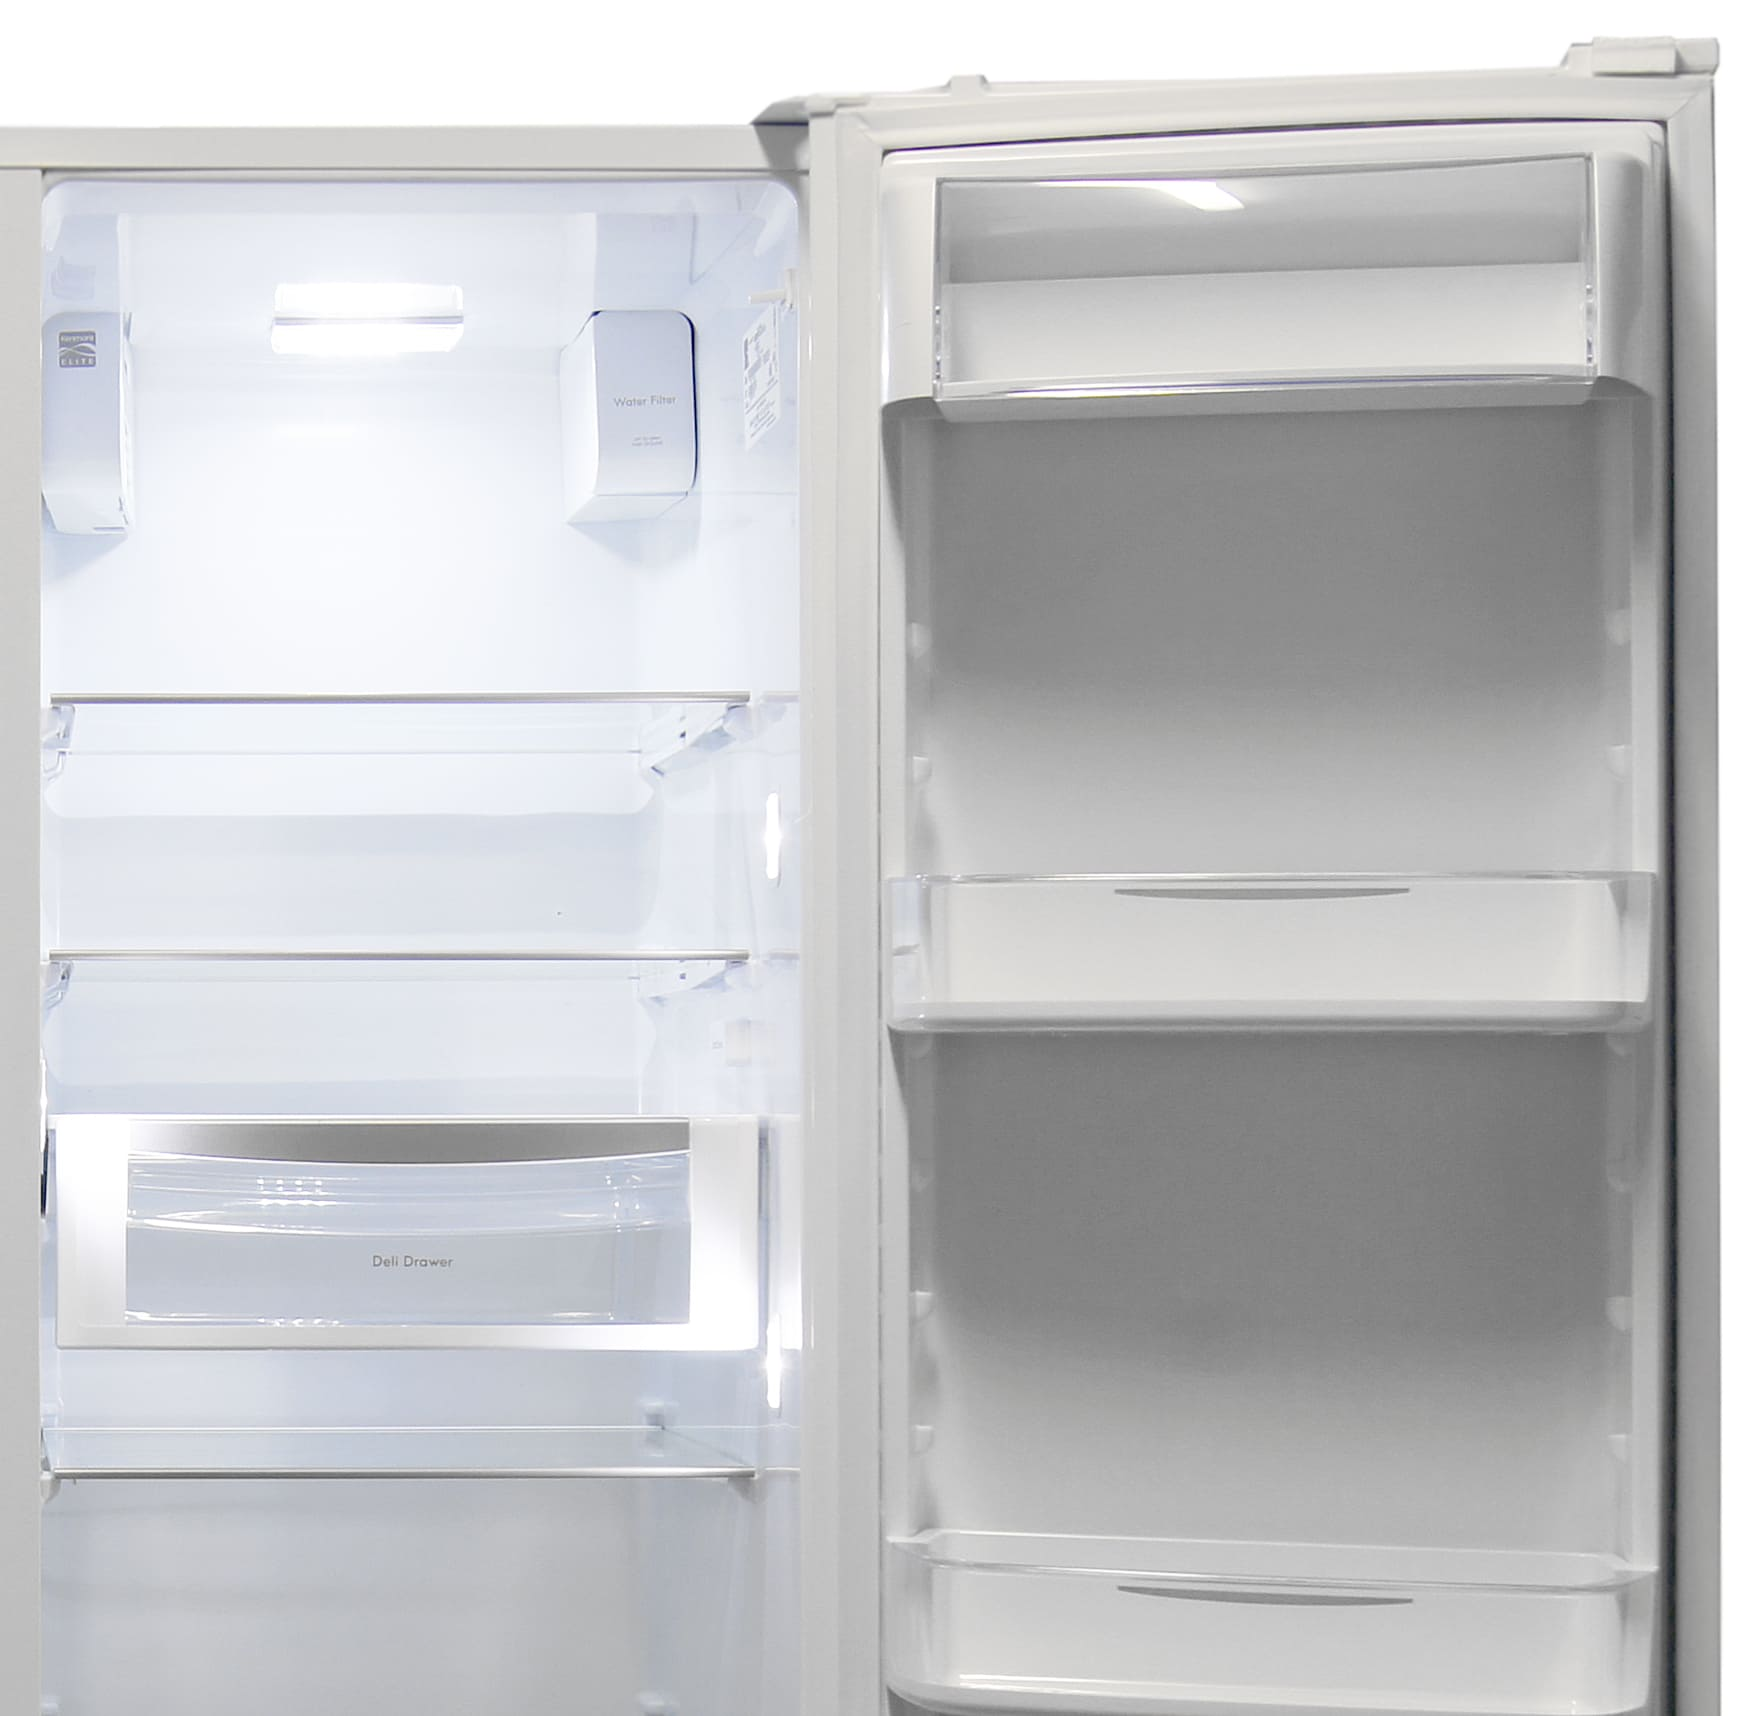 The Kenmore Elite 51162's upper portion of the fridge has both shelves and a deli drawer, as well as gallon-sized door storage.